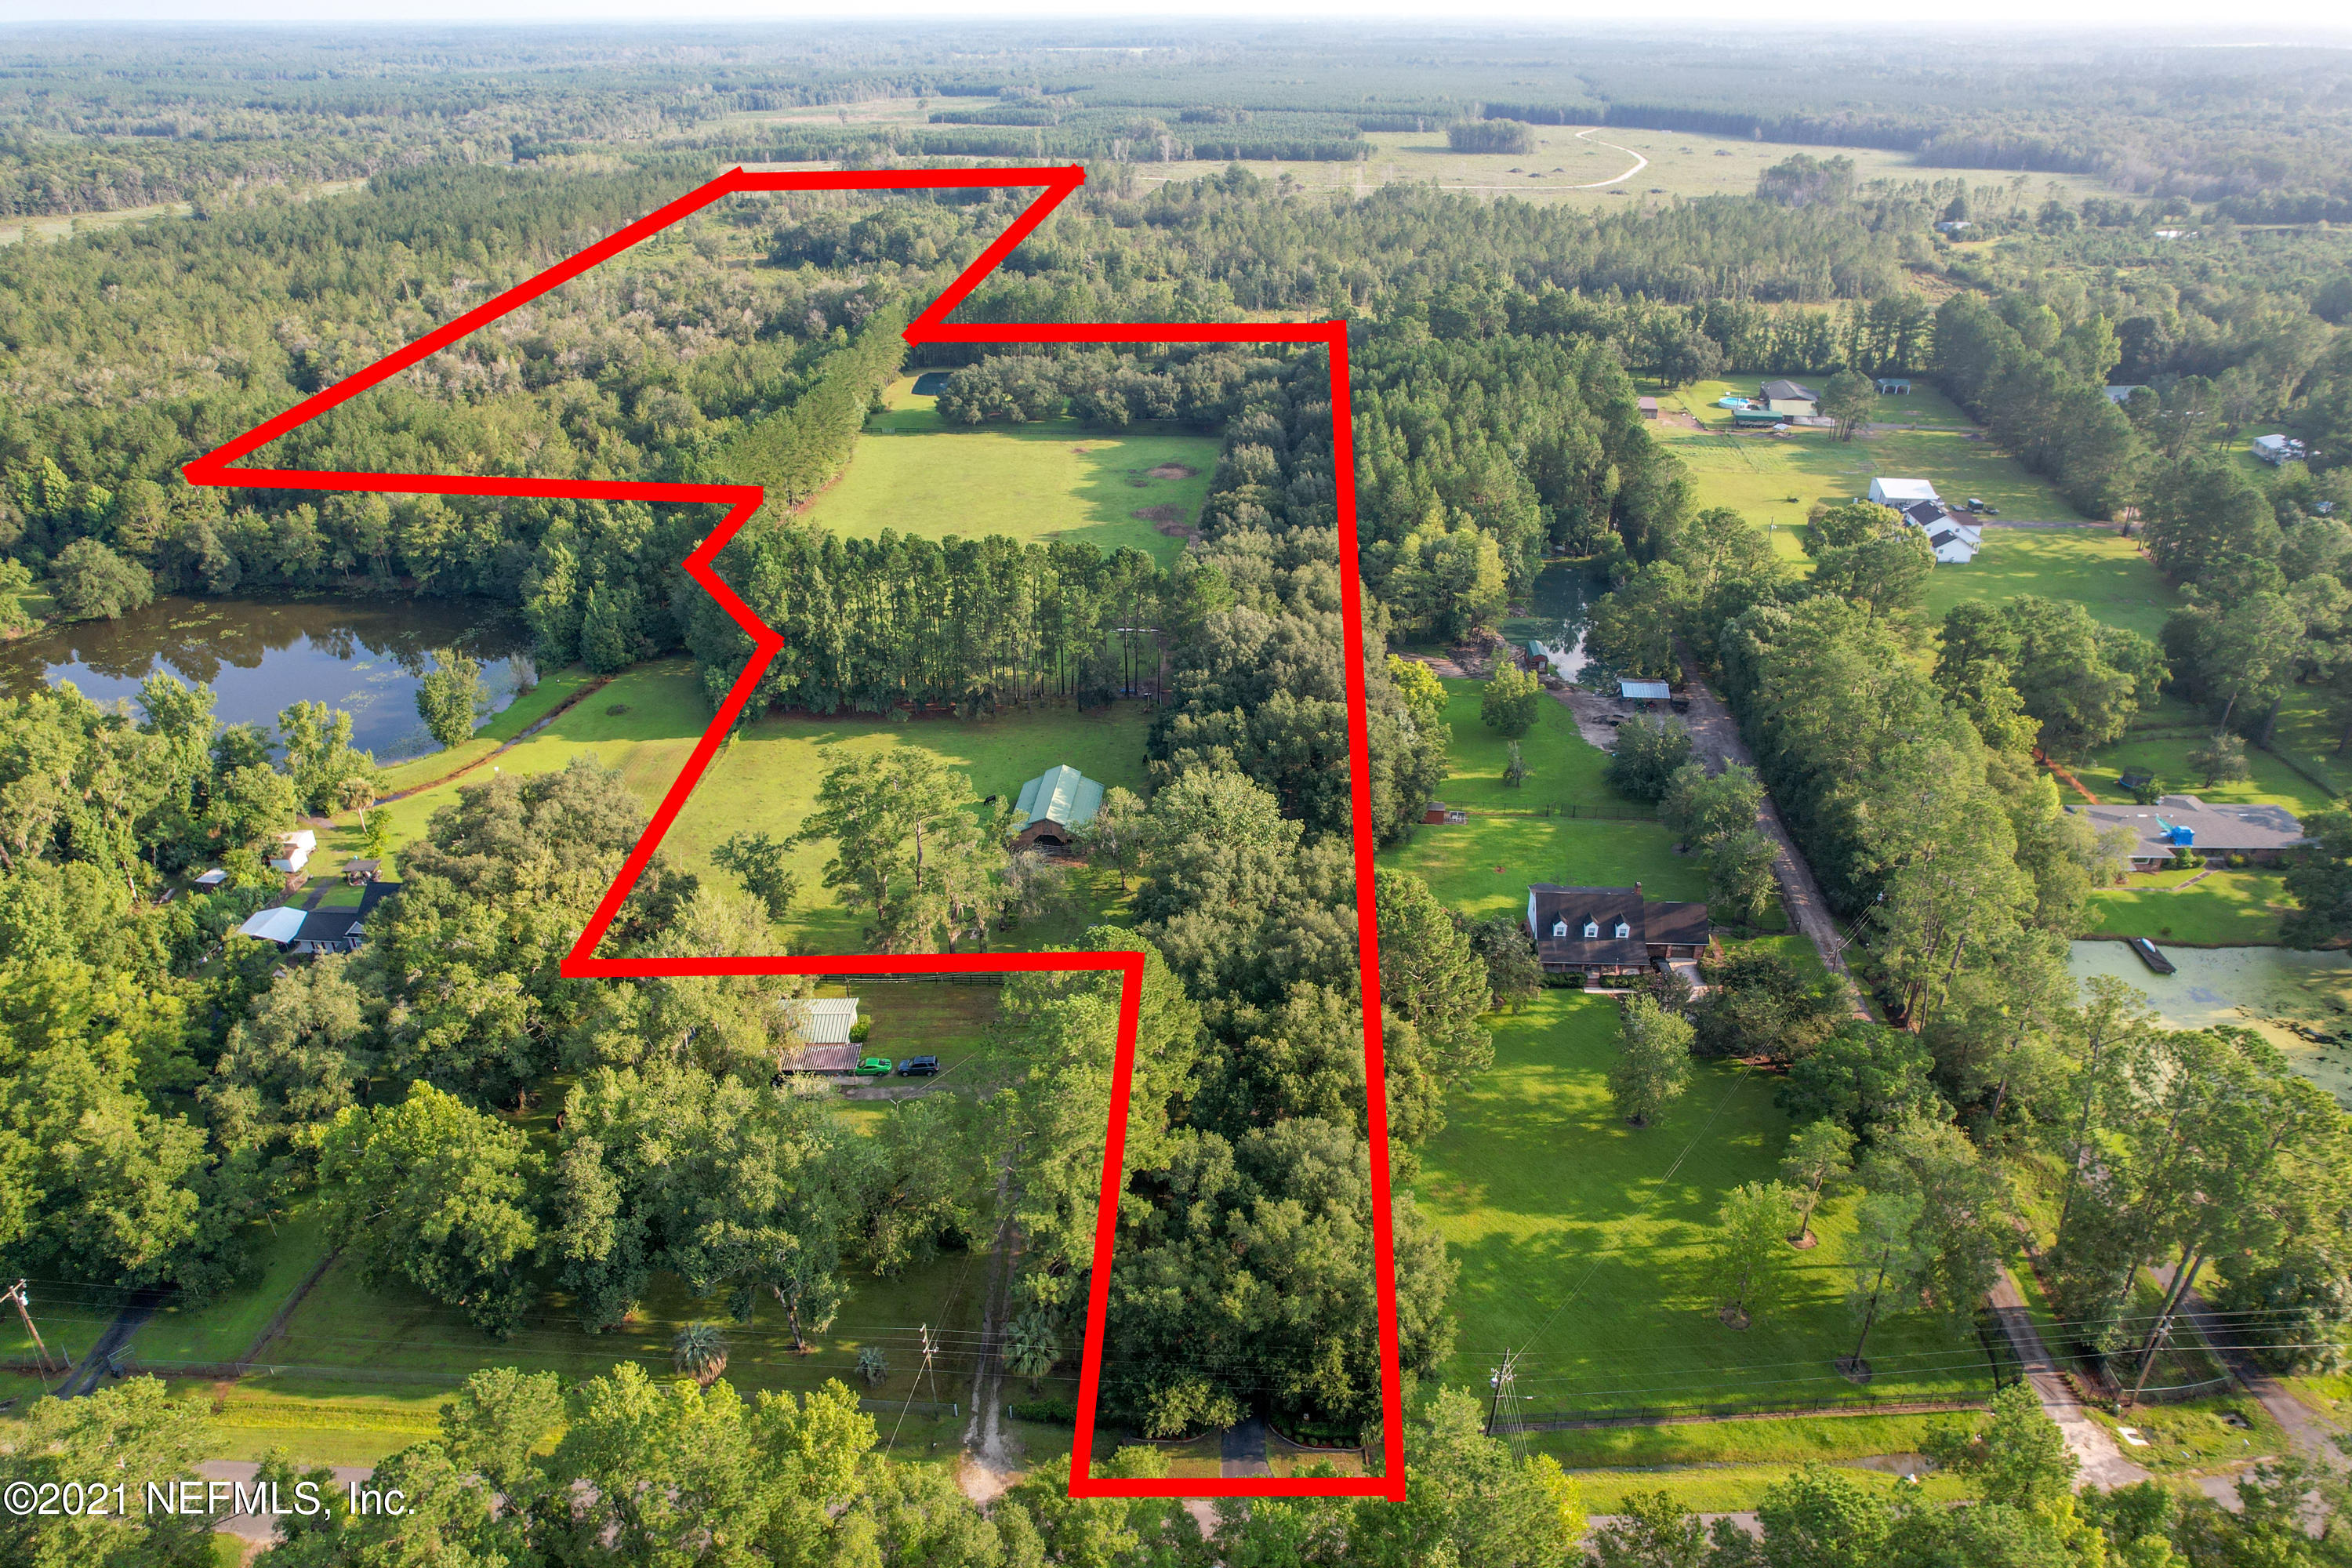 """Ranch living at its finest!  40+/- Acres!   Private gate greats you and opens up to the Canopied driveway of Oak Trees.  Feels like the entrance of a movie!  Must see video!  10 Acres cleared with manicured lawns and fenced-in pasture with barn.  All brick main home greets you with a picturesque front porch and custom picnic table included.  2,681 Sq Ft, fully updated and boasts 3 bedrooms, 2 baths.  Large vaulted living room with wood floors greats you welcoming home.  Large custom kitchen, Granite counters and updated SS Appliances.  Extra kitchen eating area, bar area and pantry.  Wood floors in all bedrooms.  Master Bath features exotic tile work, tub and dual sinks.  Private office with separate entrance.  Step out back and take a dip in the glistening pool.  Just beyond the pool Just beyond the pool is the all brick """"Pool house"""" with 696 Sq Ft.  Features a 1/2 bath, wet bar, pool table, living space and beautiful wood walls.  Roof 2019 on both buildings.  Separate Mother in law suite (fully furnished) contains a living room, kitchen, dining room, bedroom, 2 full bathrooms and laundry room; could be rented short term or long term.  Next to the apartment is a heated and cooled craft room.  This could easily be converted to another bedroom or keep it as is, storage or workshop.  This building shows 2028 Sq Ft, per the property appraiser site.  The oversized garage is located in the back of this building.  The remaining 29+ Acres is mostly wooded with a trail around the property.  3 Covered areas and targets set up for long range shooting.  Custom pond with liner backing is stocked with Talapia, Carp, Brim and Catfish. The OR zoning permits the owner for many uses.  The possibilities are endless!  Ask for the OR Zoning Permitted Uses, you'll be shocked at your options. There are two donkeys (Mom Chole and daughter Clementine) very kind and loving, they love interacting with humans.  Their favorite snack is a carrot.  Cinco is a miniature horse and was born on Cinc"""